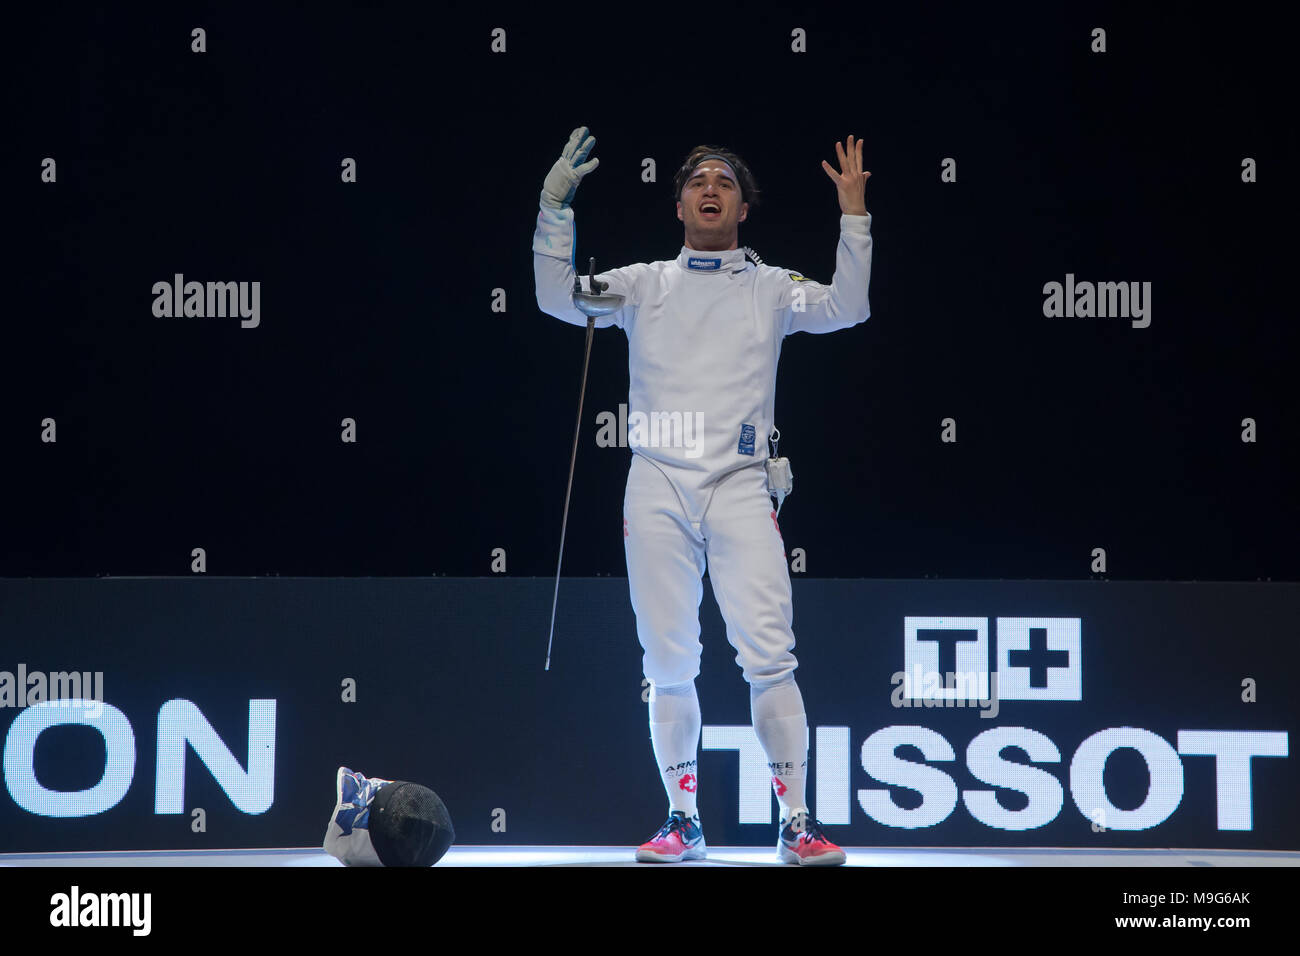 Budapest. 25th Mar, 2018. Max Heinzer of Switzerland celebrates after winning the final of the men's Epee Grand Prix in Budapest, Hungary on March 25, 2018. Max Heinzer claimed the title by defeating Alex Fava of France with 15-13 in the final. Credit: Attila Volgyi/Xinhua/Alamy Live News Stock Photo